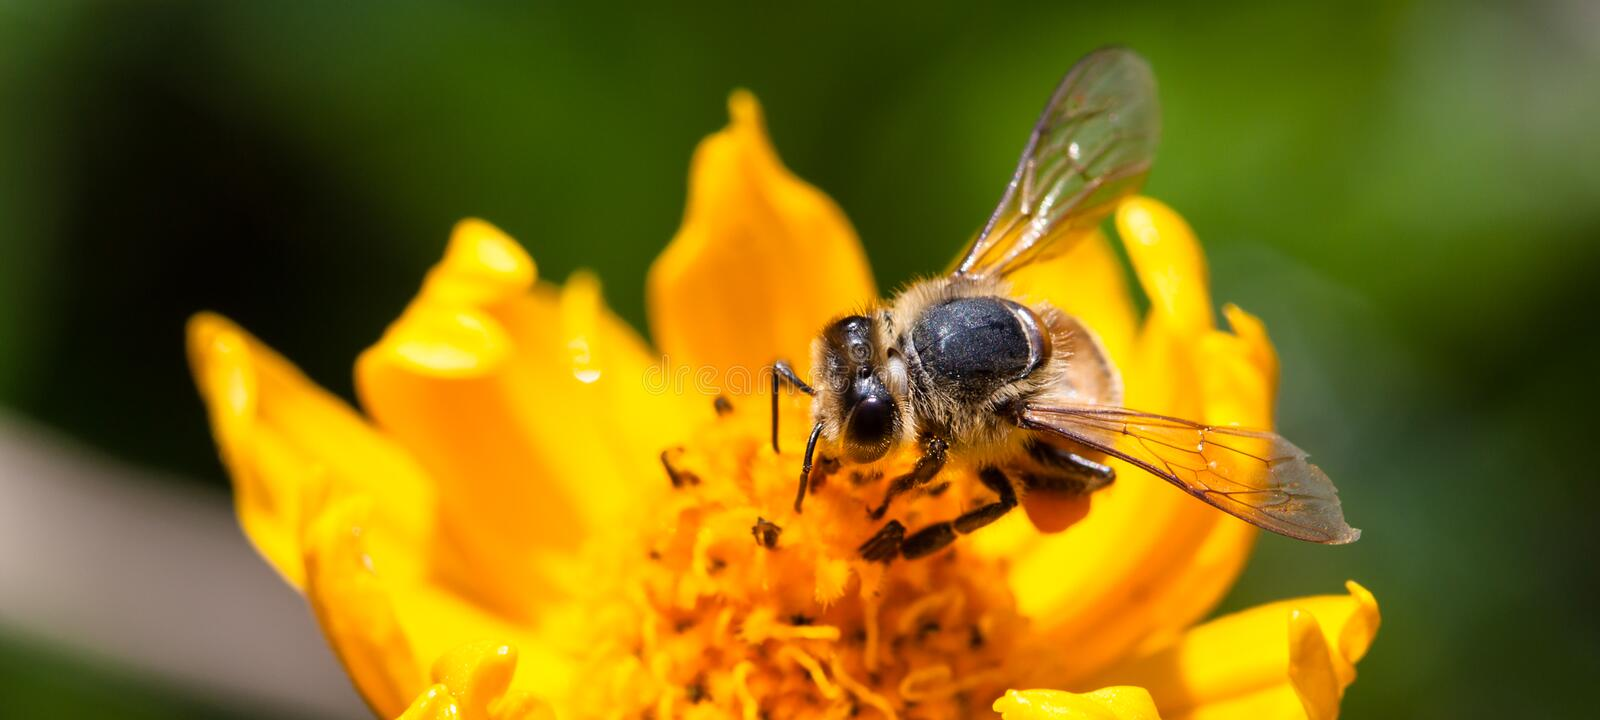 Bee pollinator collecting pollen on the surface of a yellow fresh flower during Spring and Summer macro photo. Bee pollinator collecting pollen on the surface of royalty free stock photos